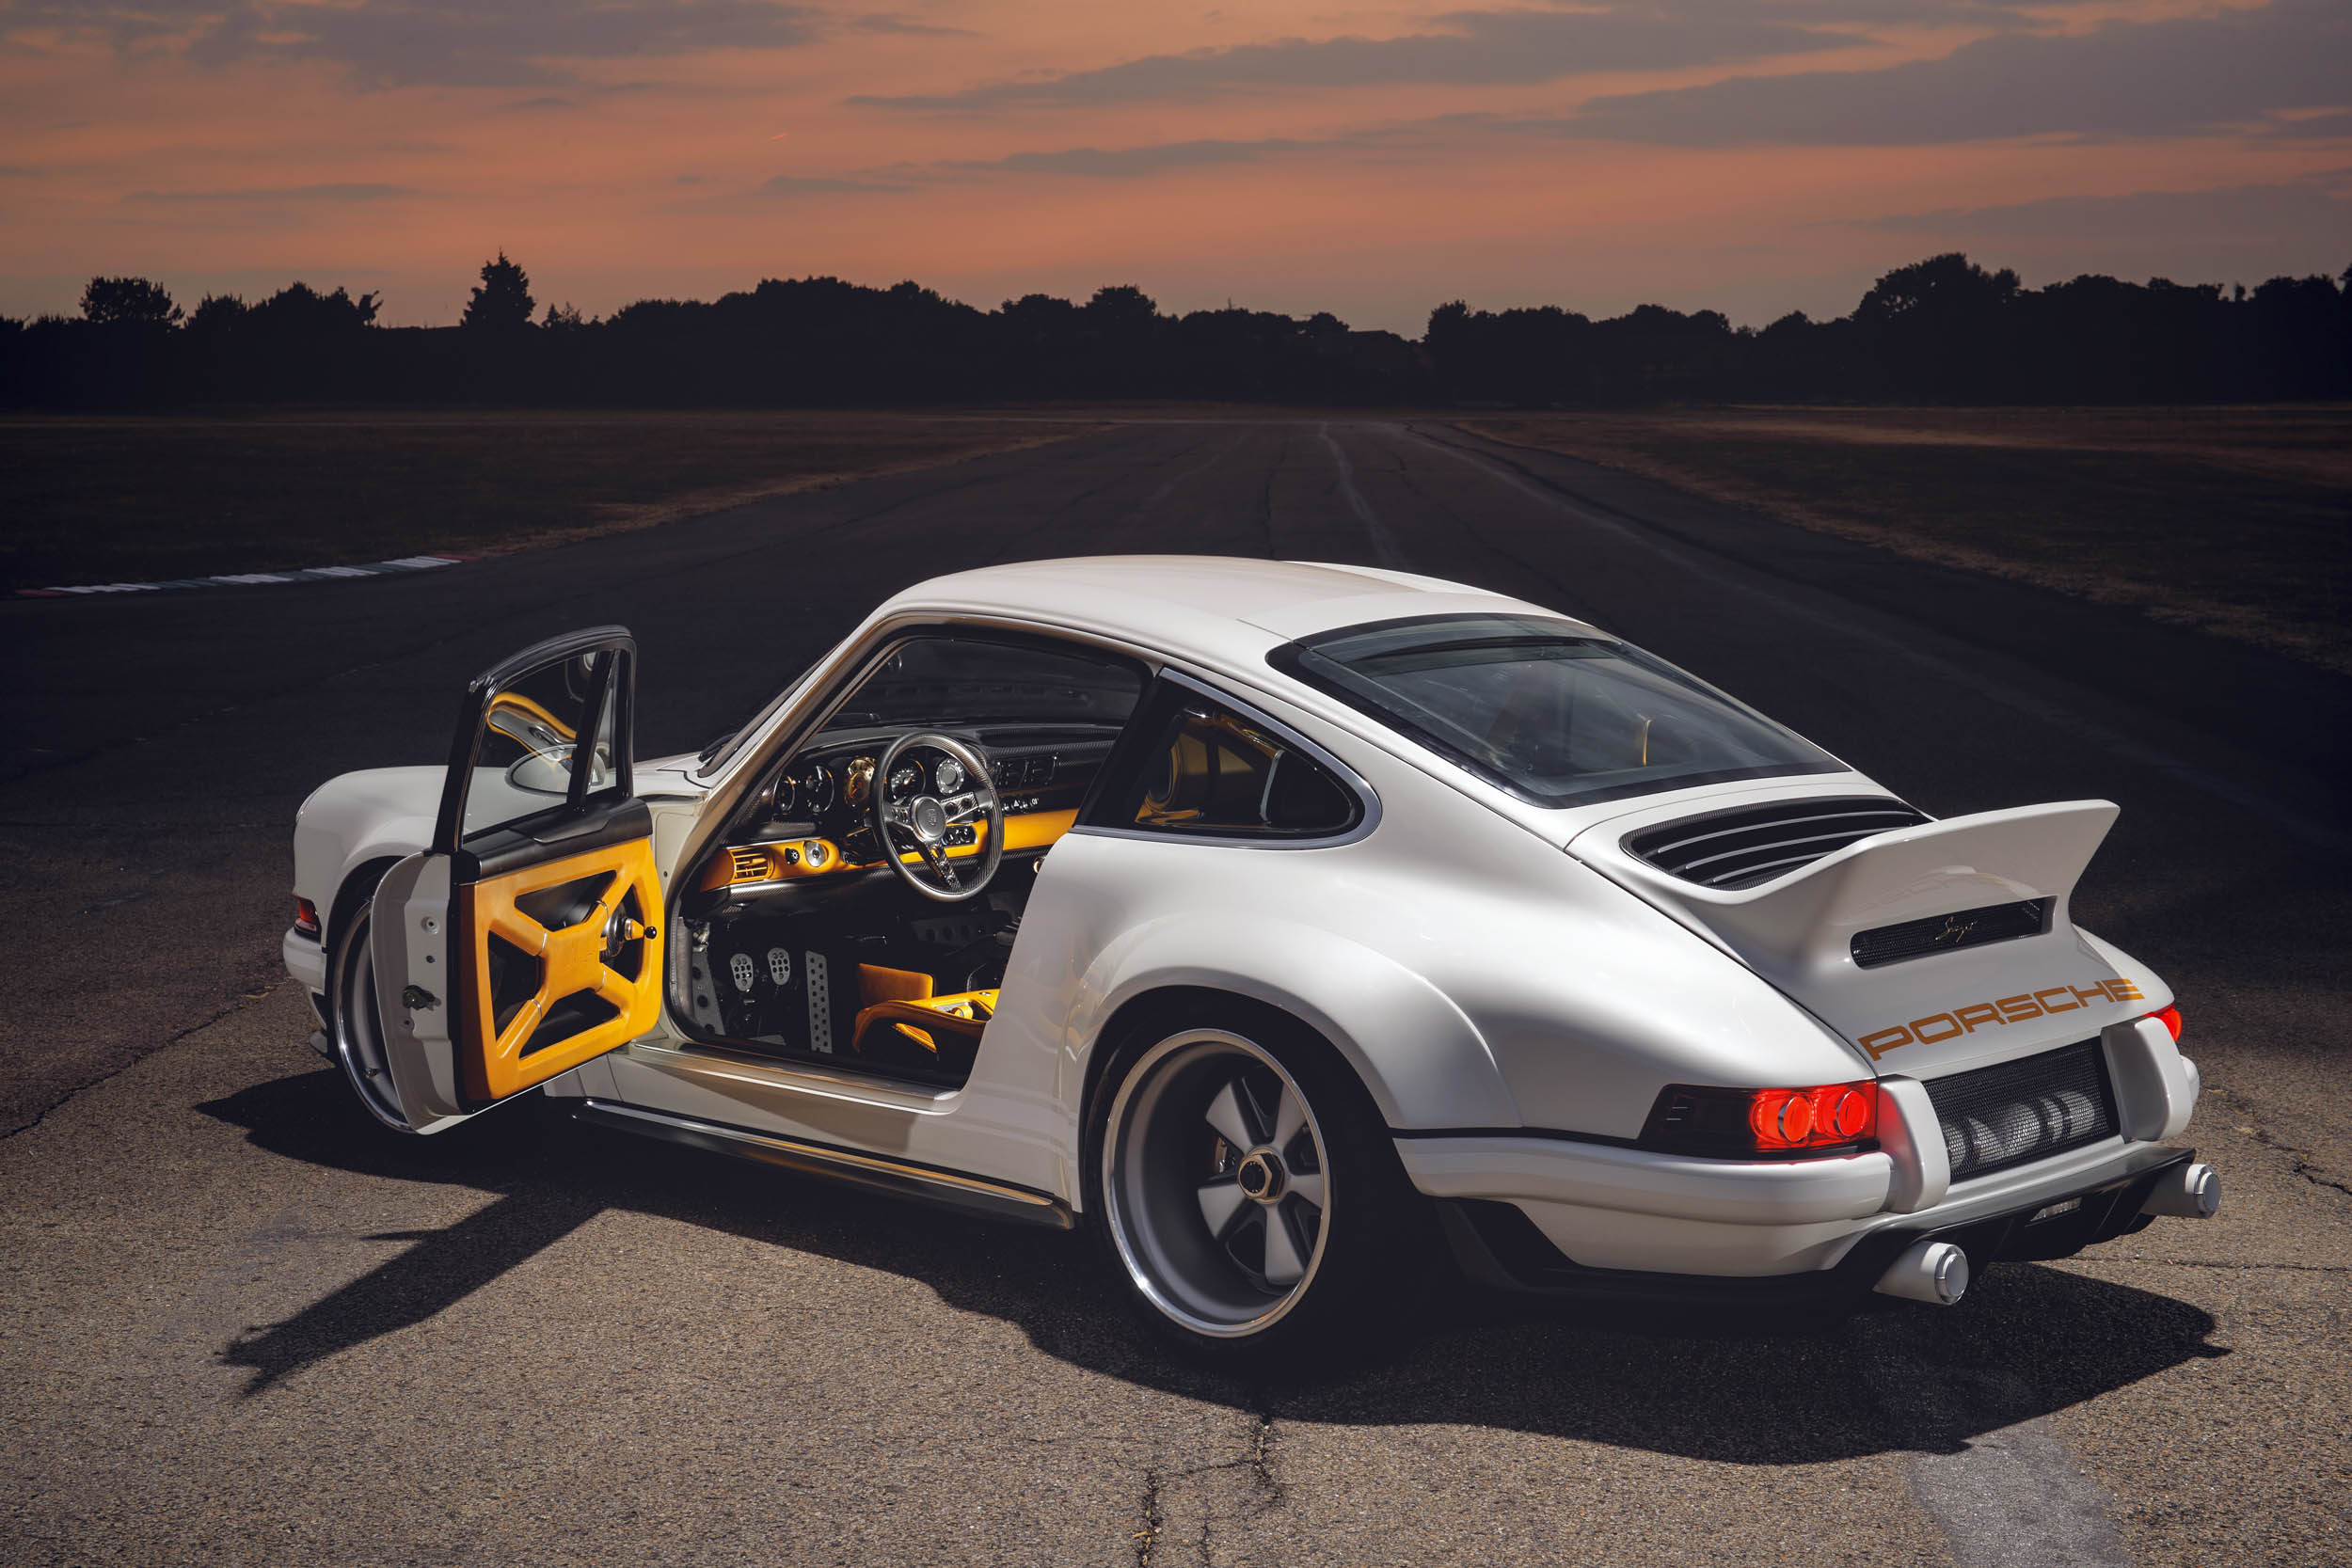 1990 Porsche 911 (964), reimagined by Singer rear 3/4